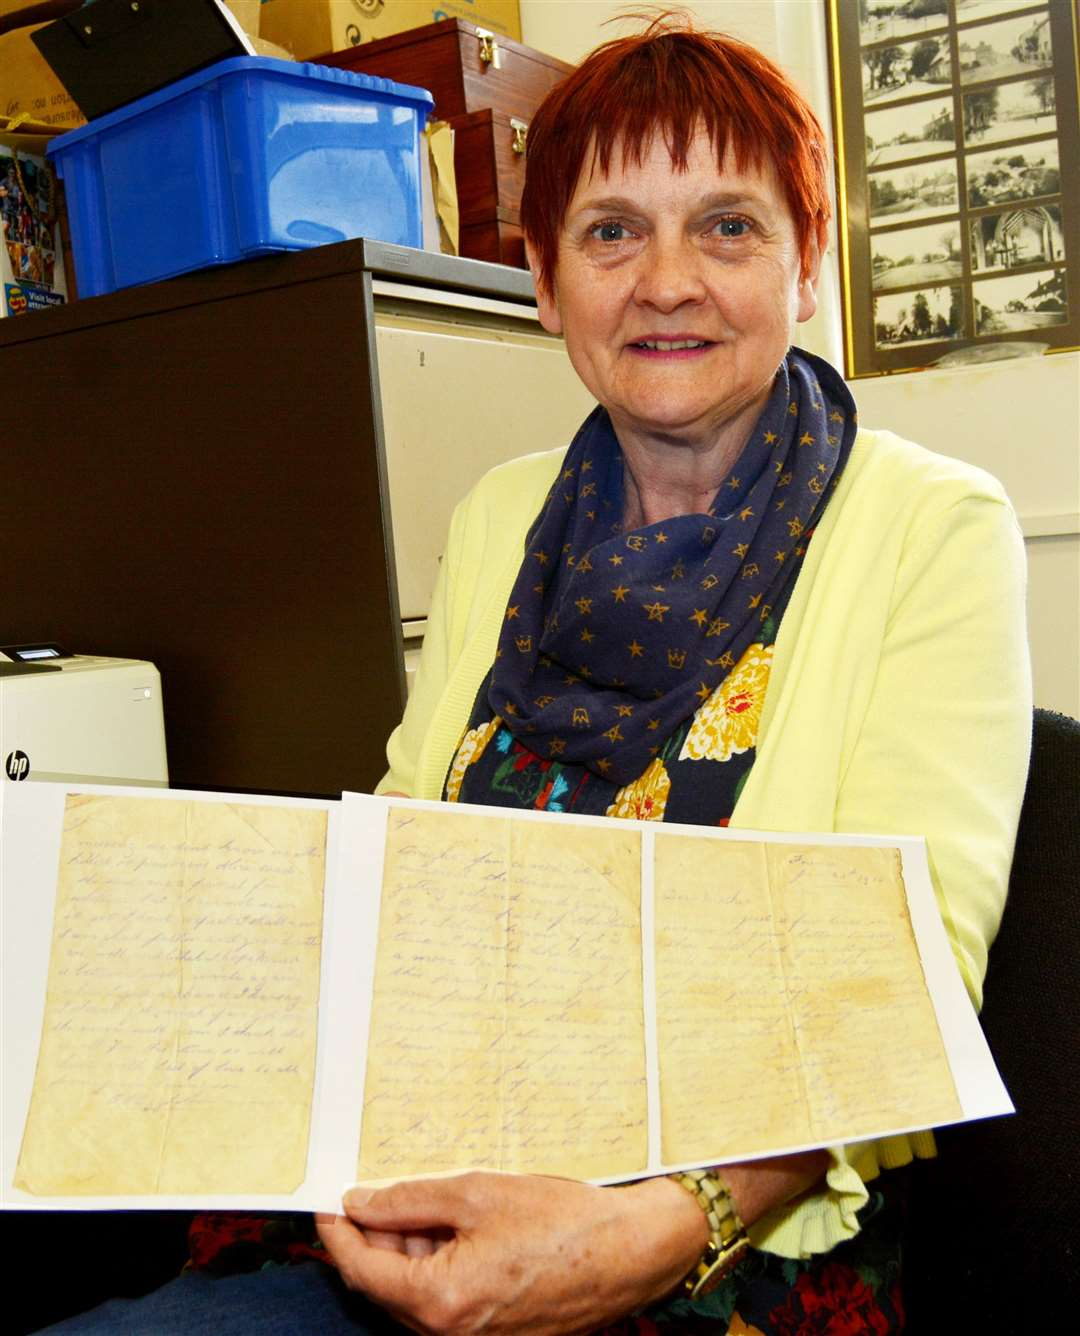 Visitor Sandra Howard with a copy of the letter from the front line at Amiens announcing the World War One death of a 23-year-old Docking soldier